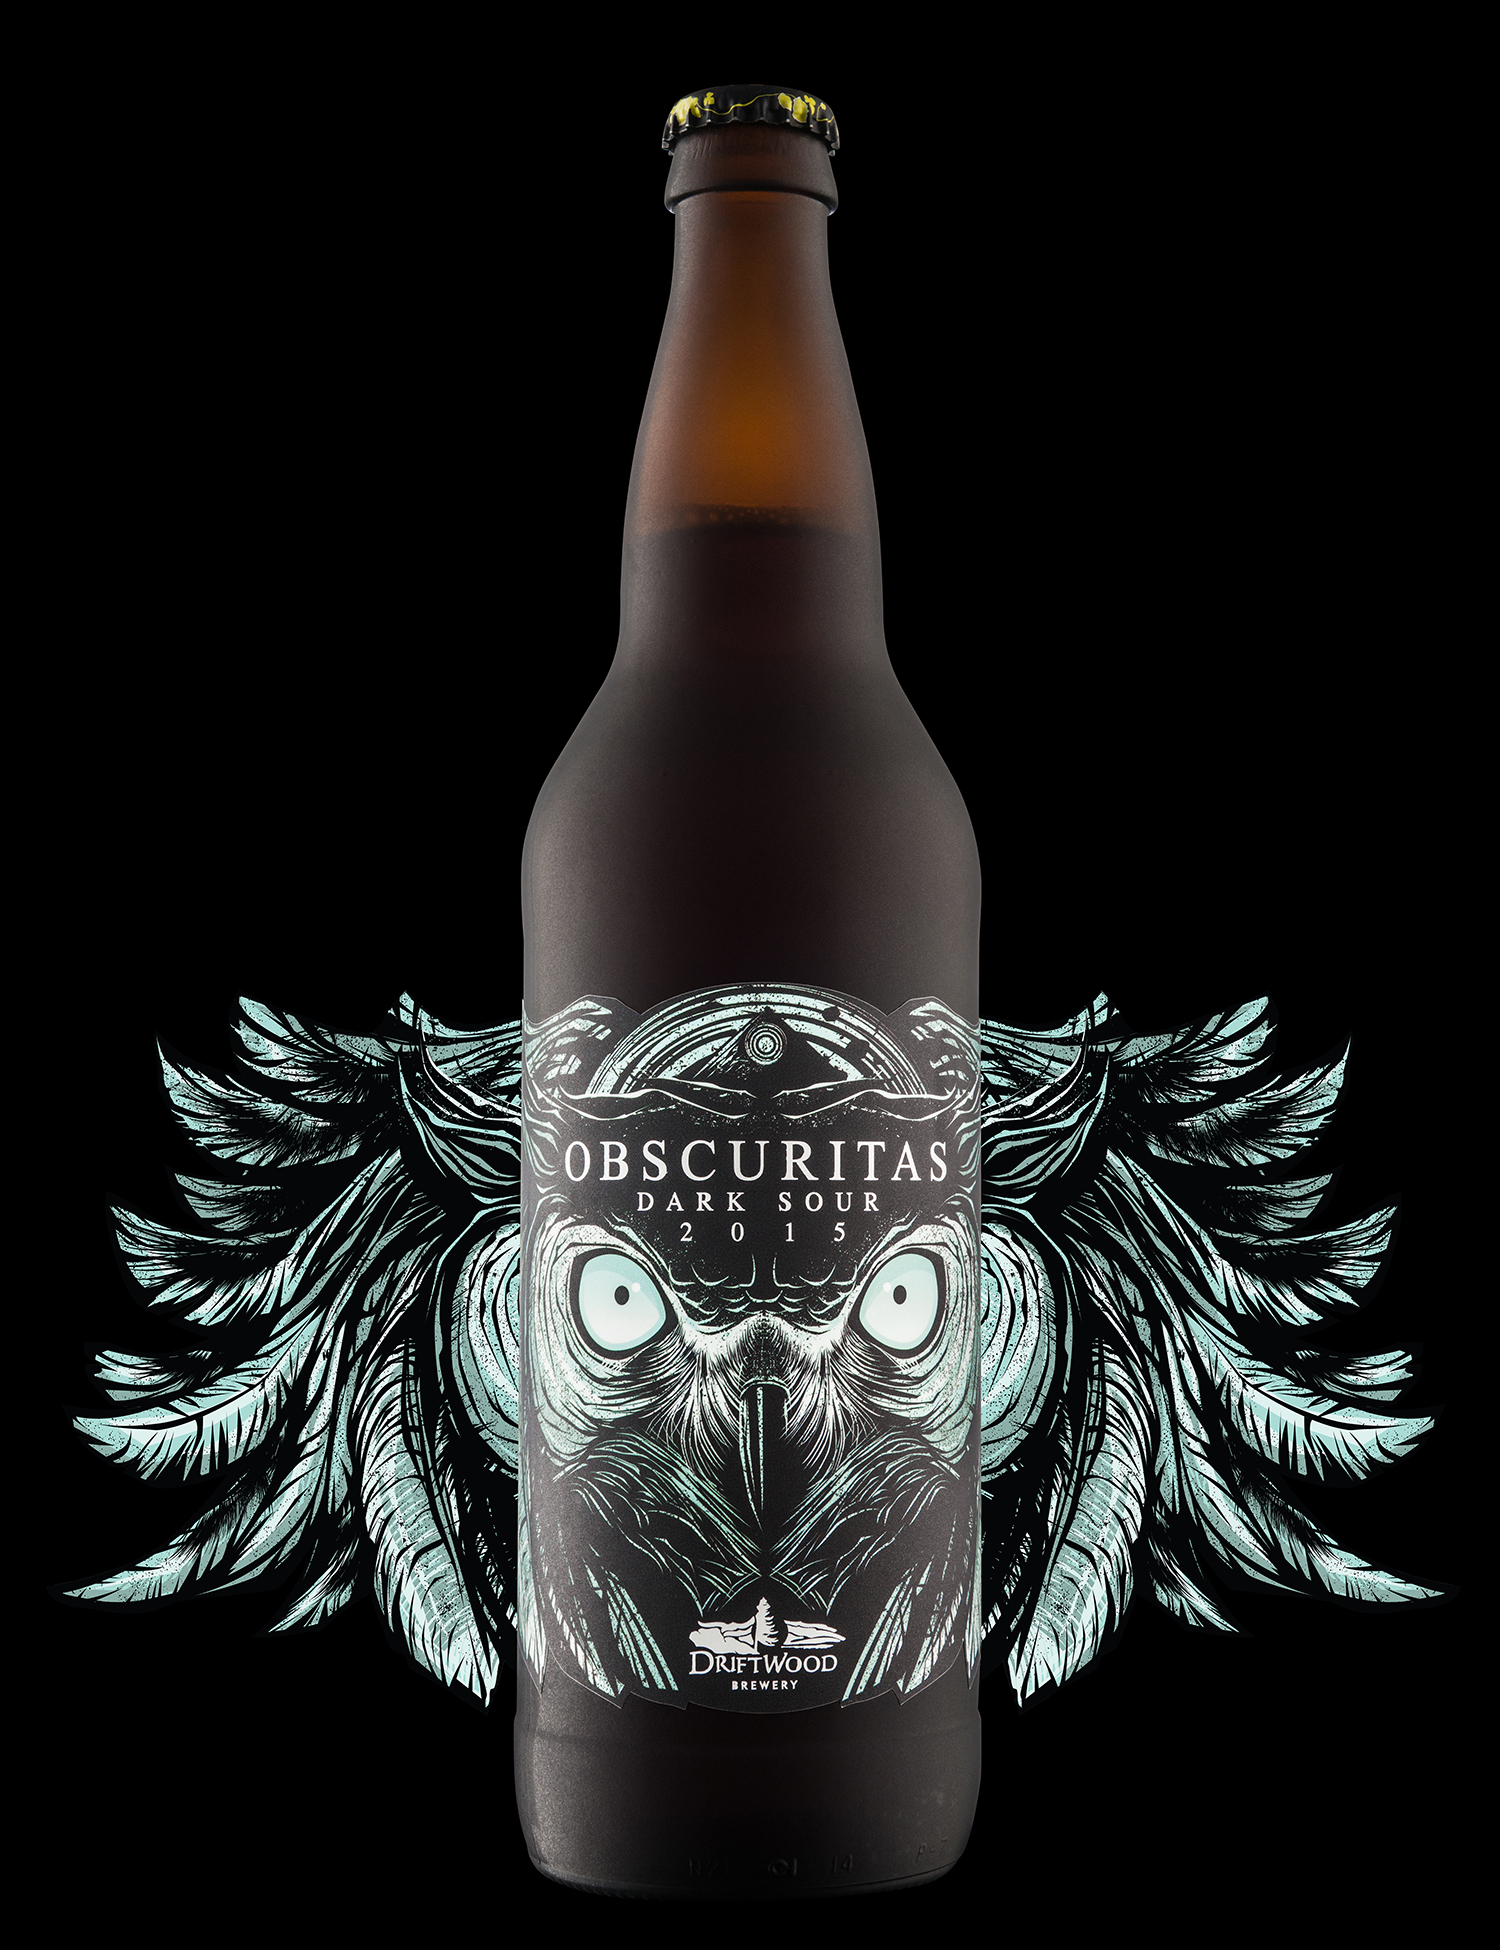 Packaging Design for Driftwood Brewery's Obscuritas Dark Sour